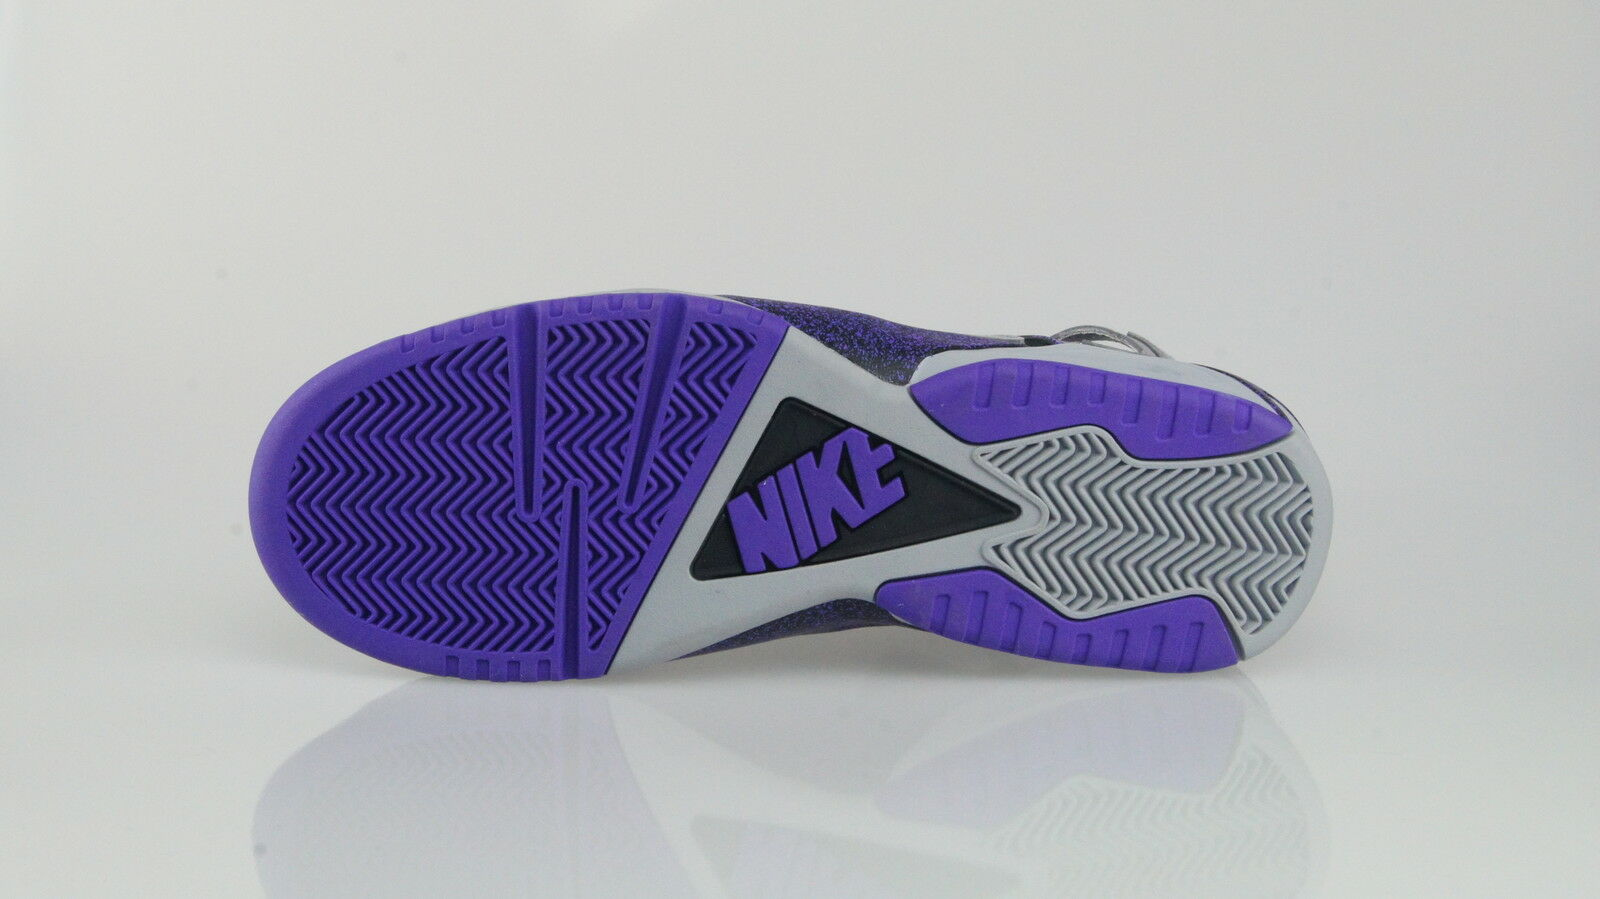 NIKE HUARACHE AIR TECH CHALLENGE HUARACHE NIKE SAMPLE 54b28b